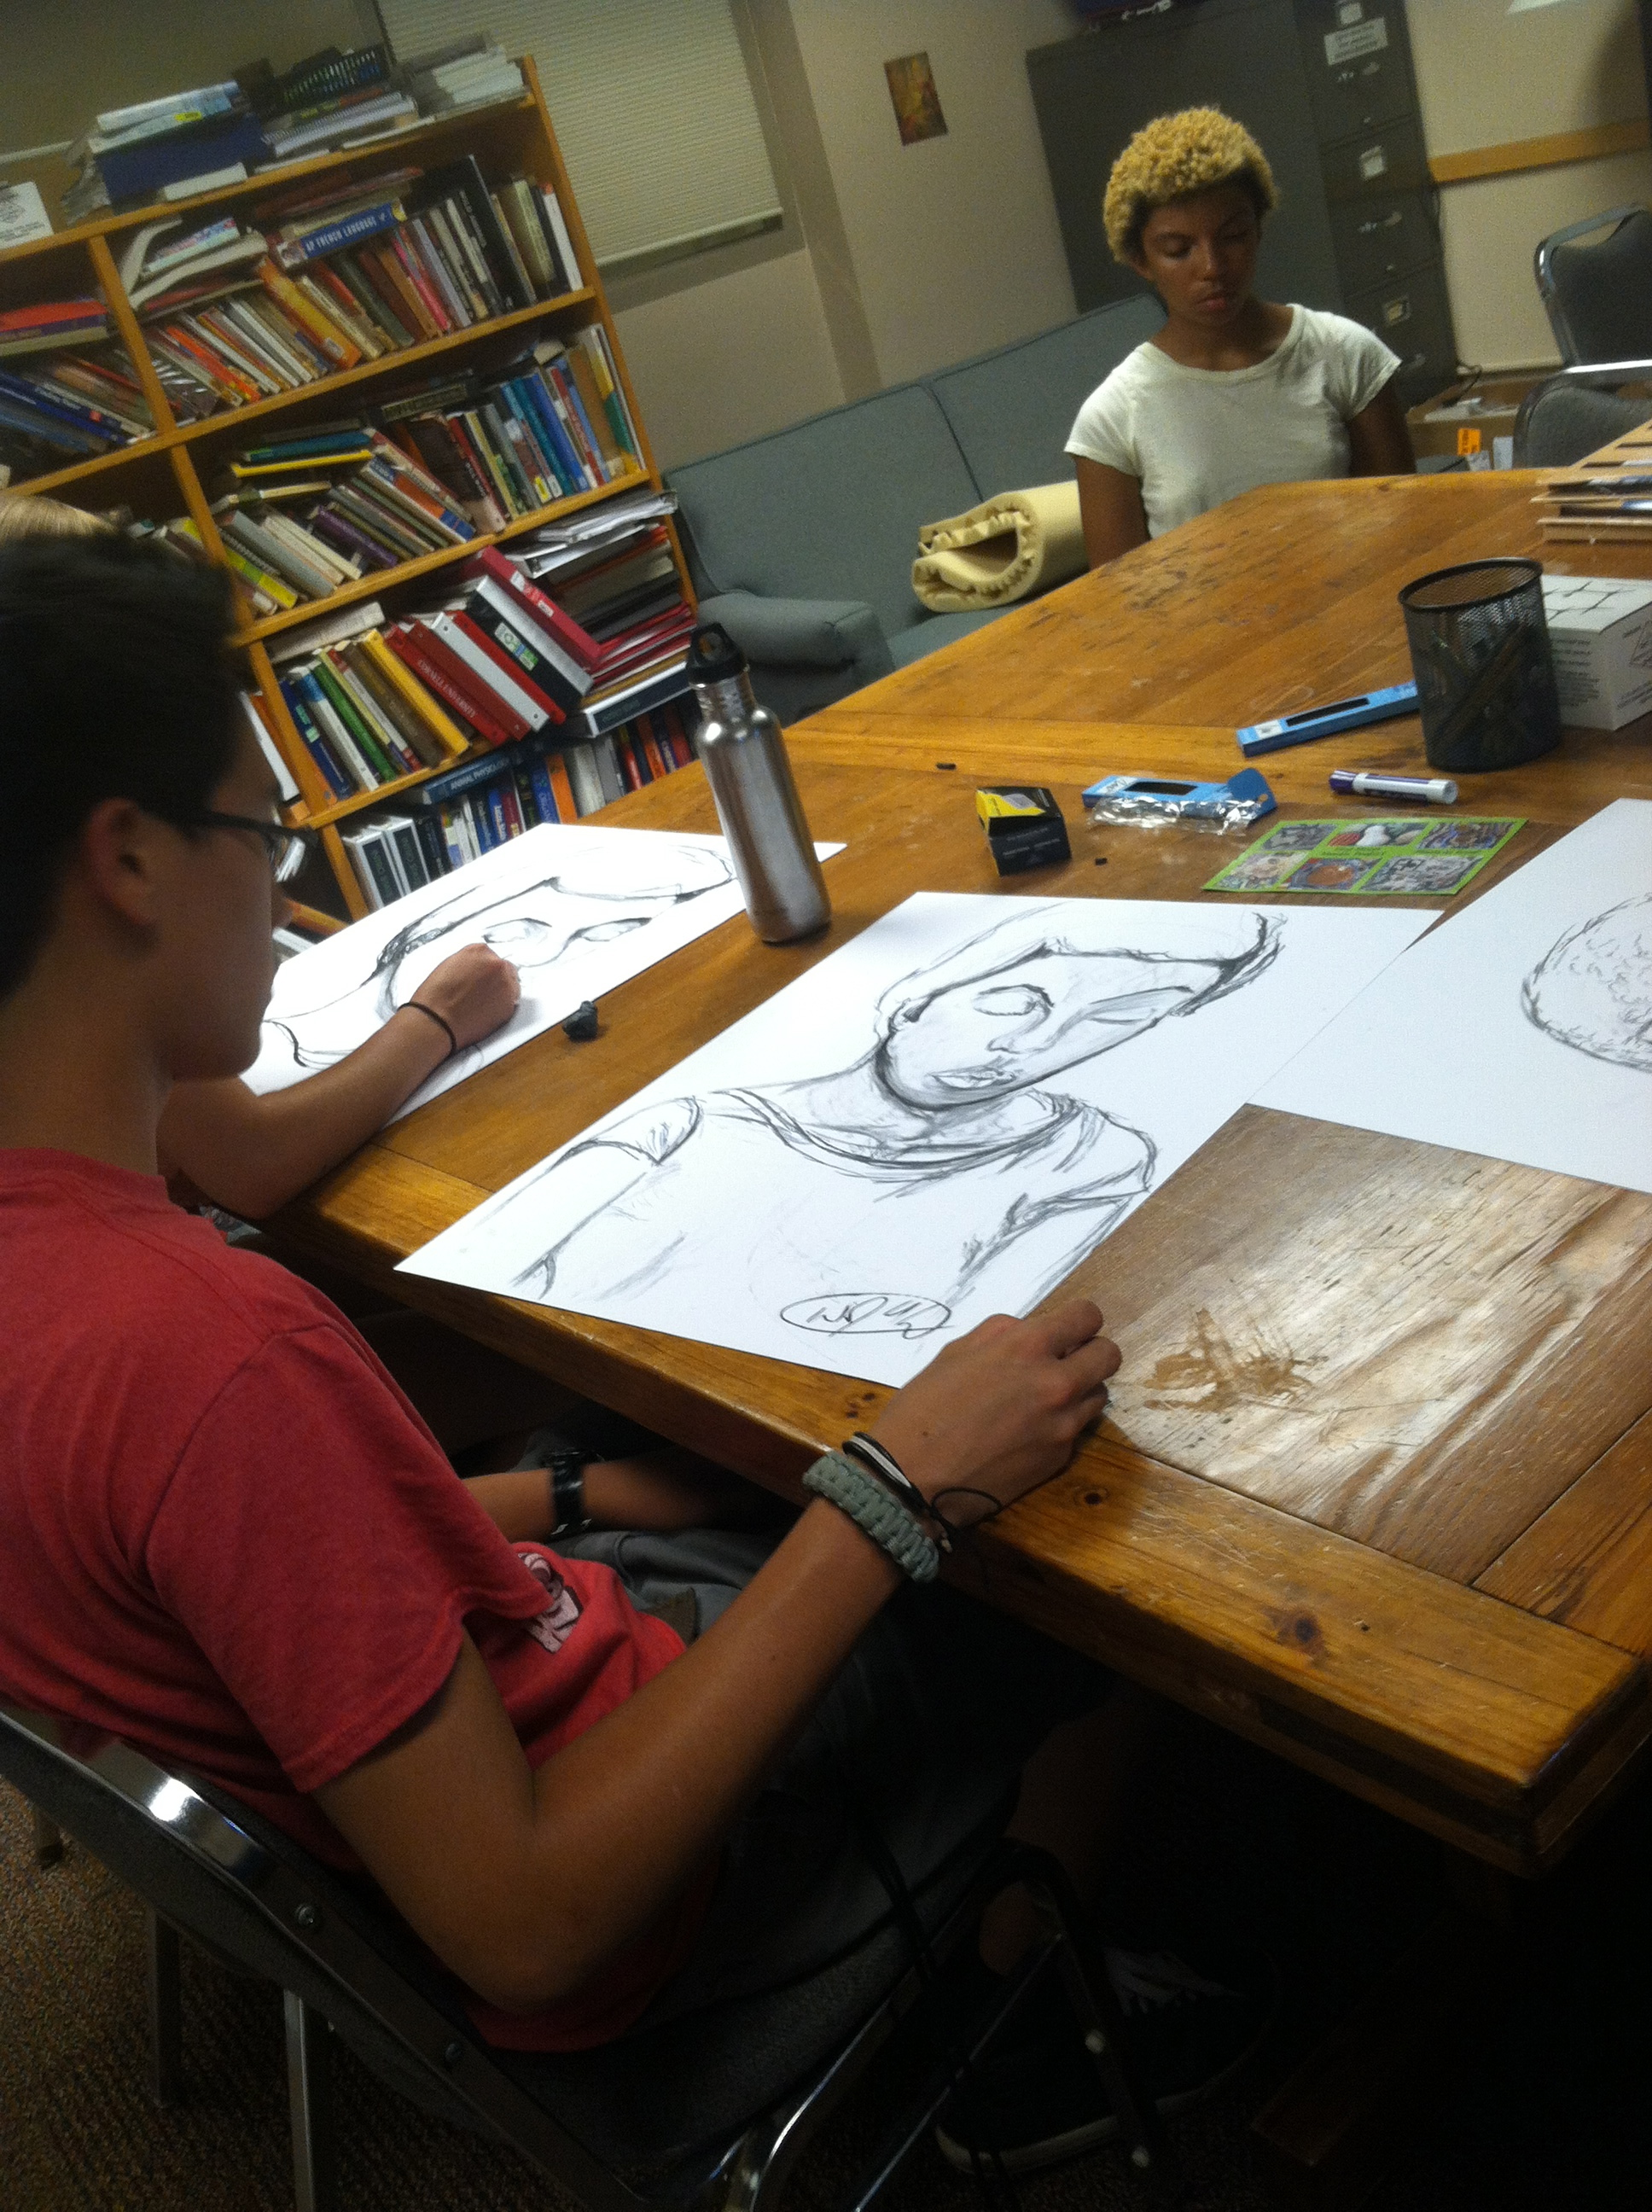 Upward Bound Drawing at Cornell